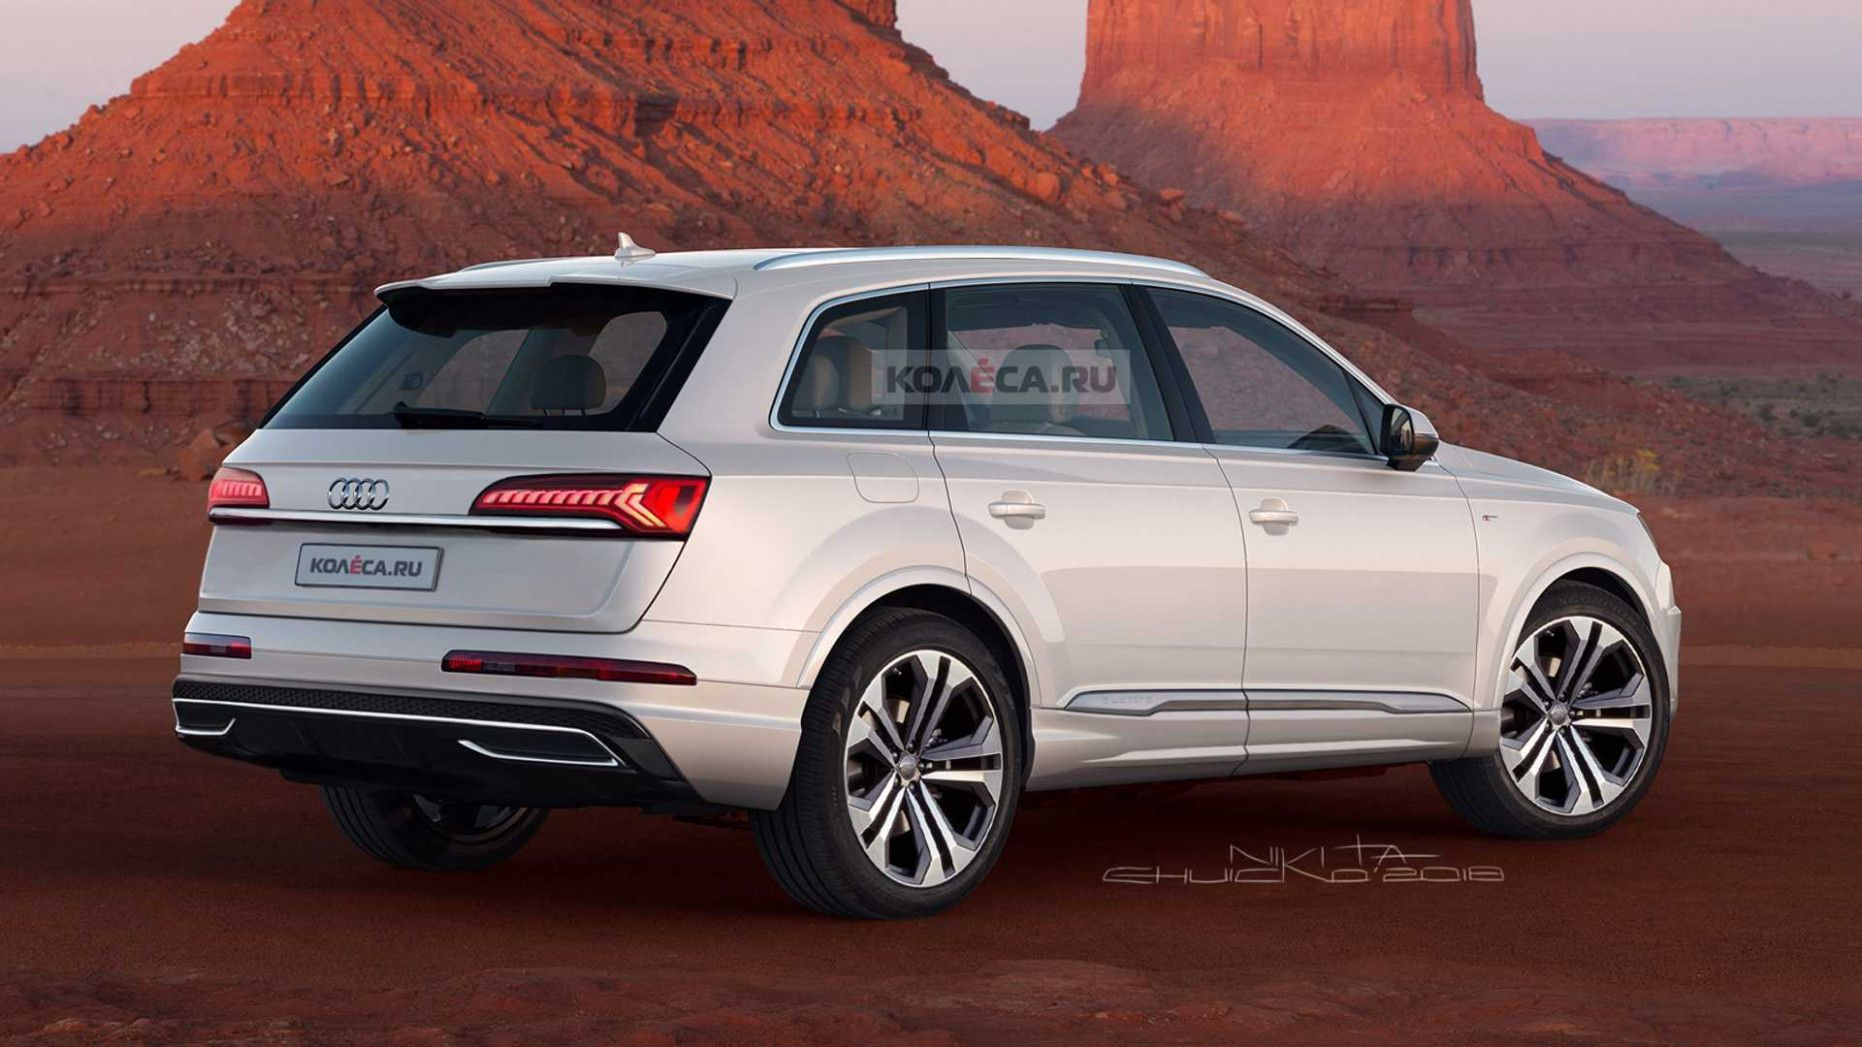 Audi Q7 2020 Update Performance And New Engine Model Audi Q7 2020 Update Audi India Could Barrage The 2020 Q7 Facelift In March 2020 The Absolute Check More Di 2020